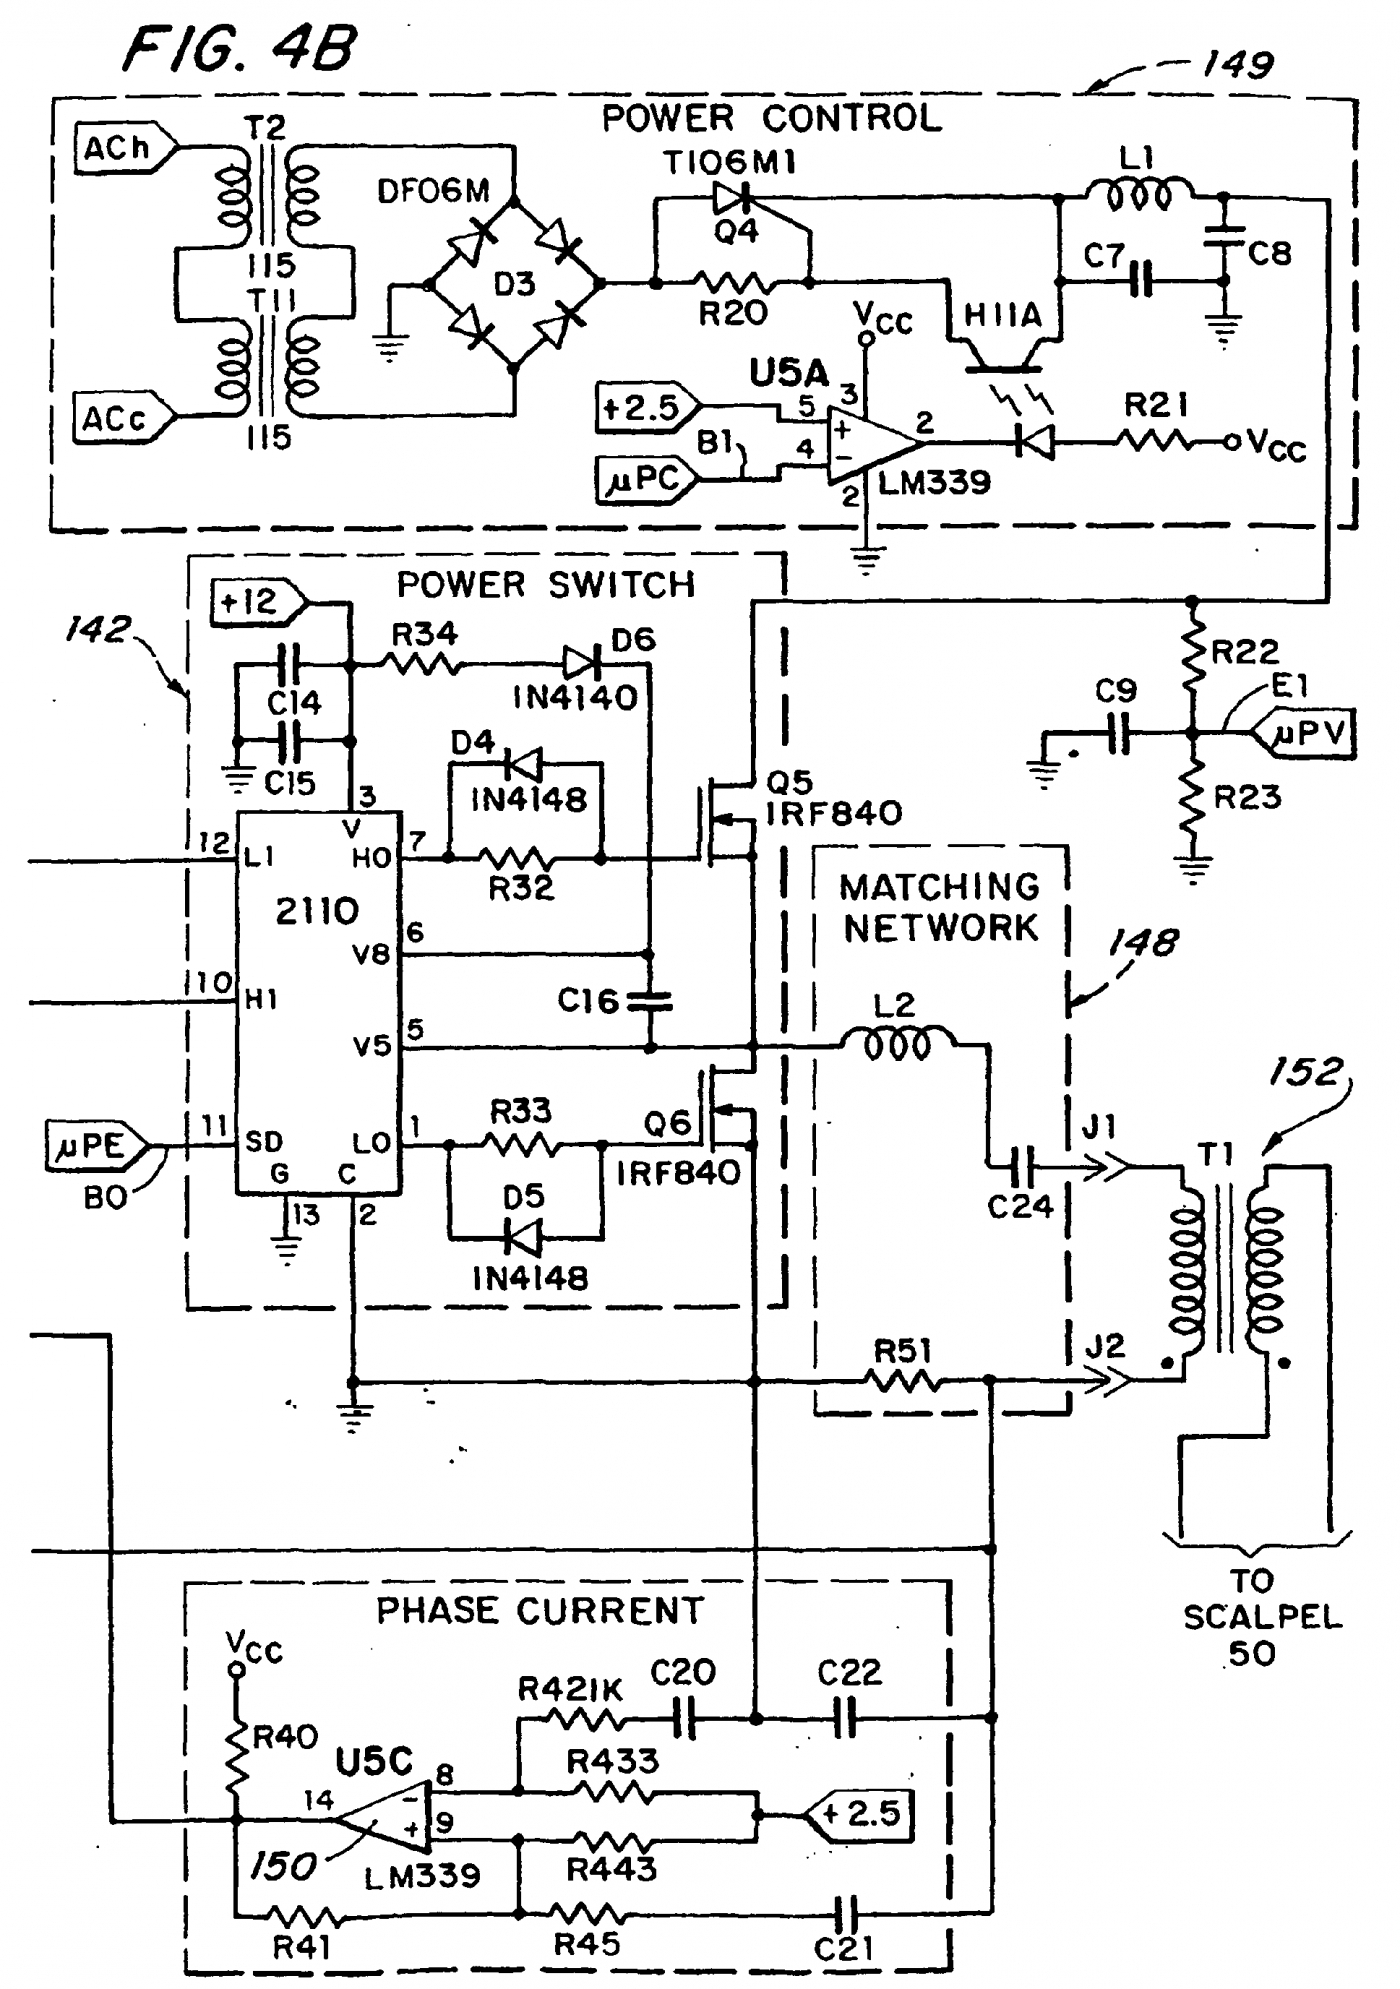 Rotork Wiring Diagram Smw Sp 001